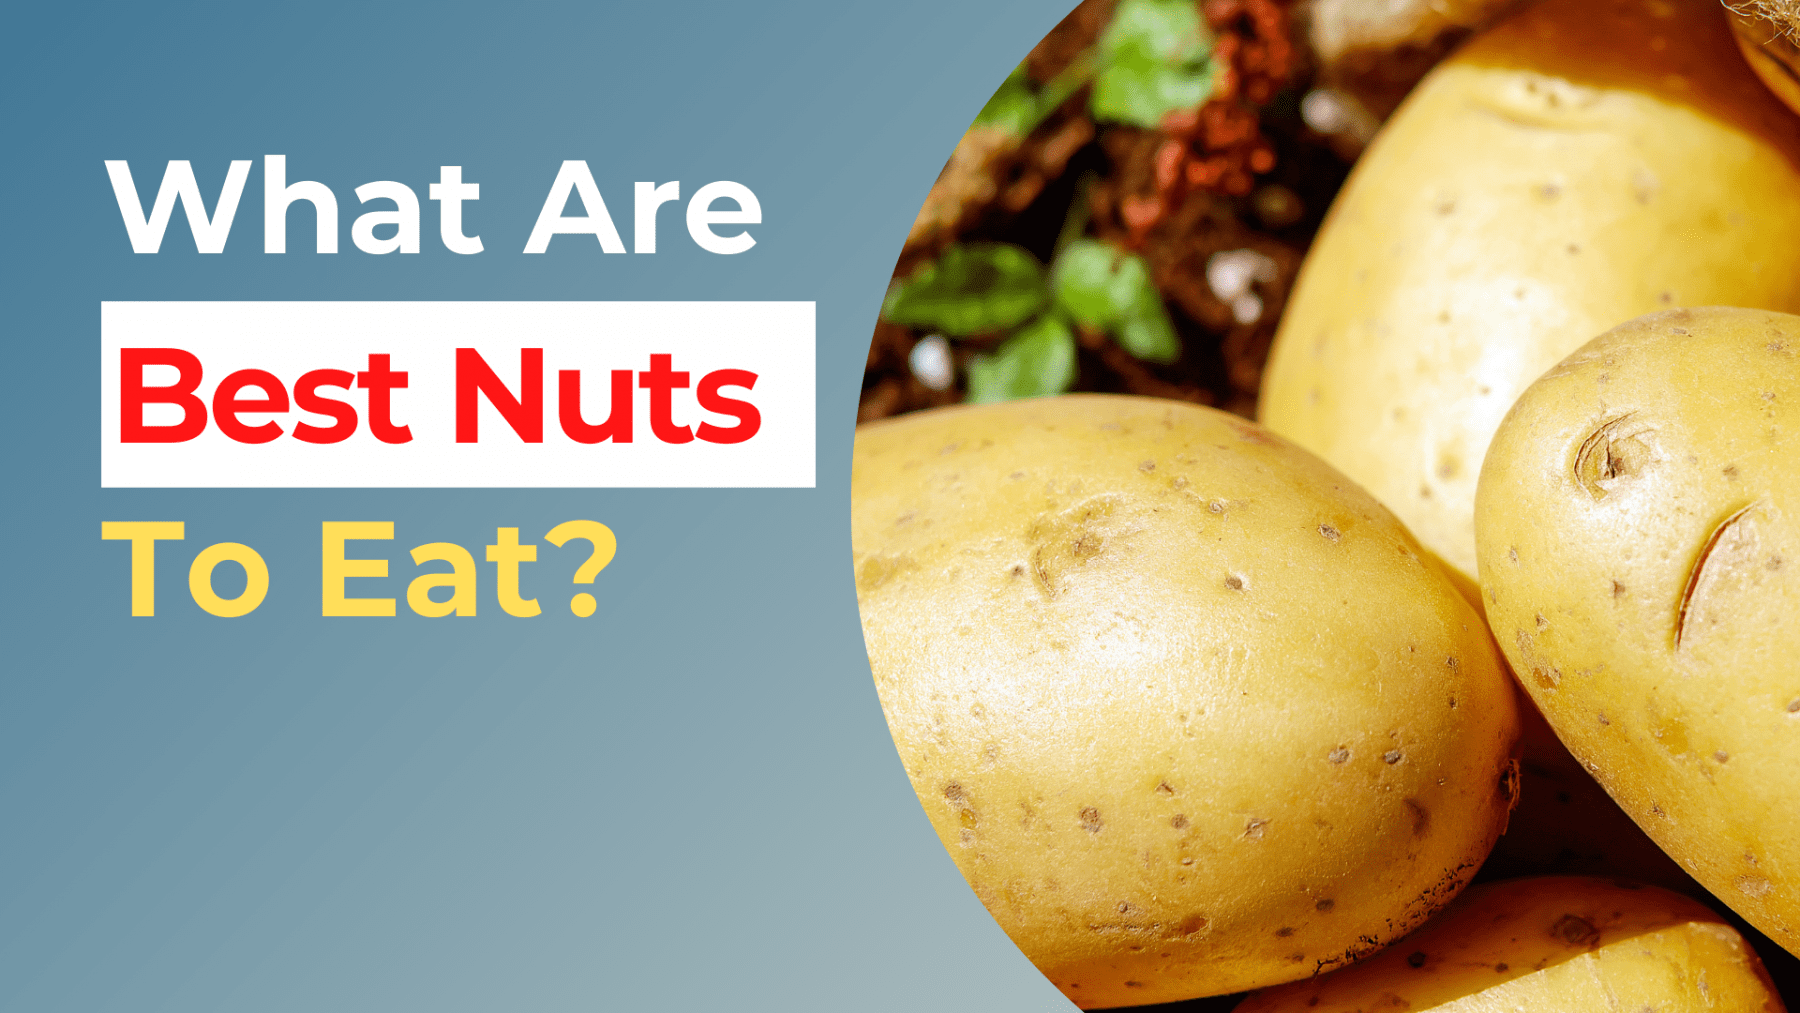 What Are The Best Nuts To Eat